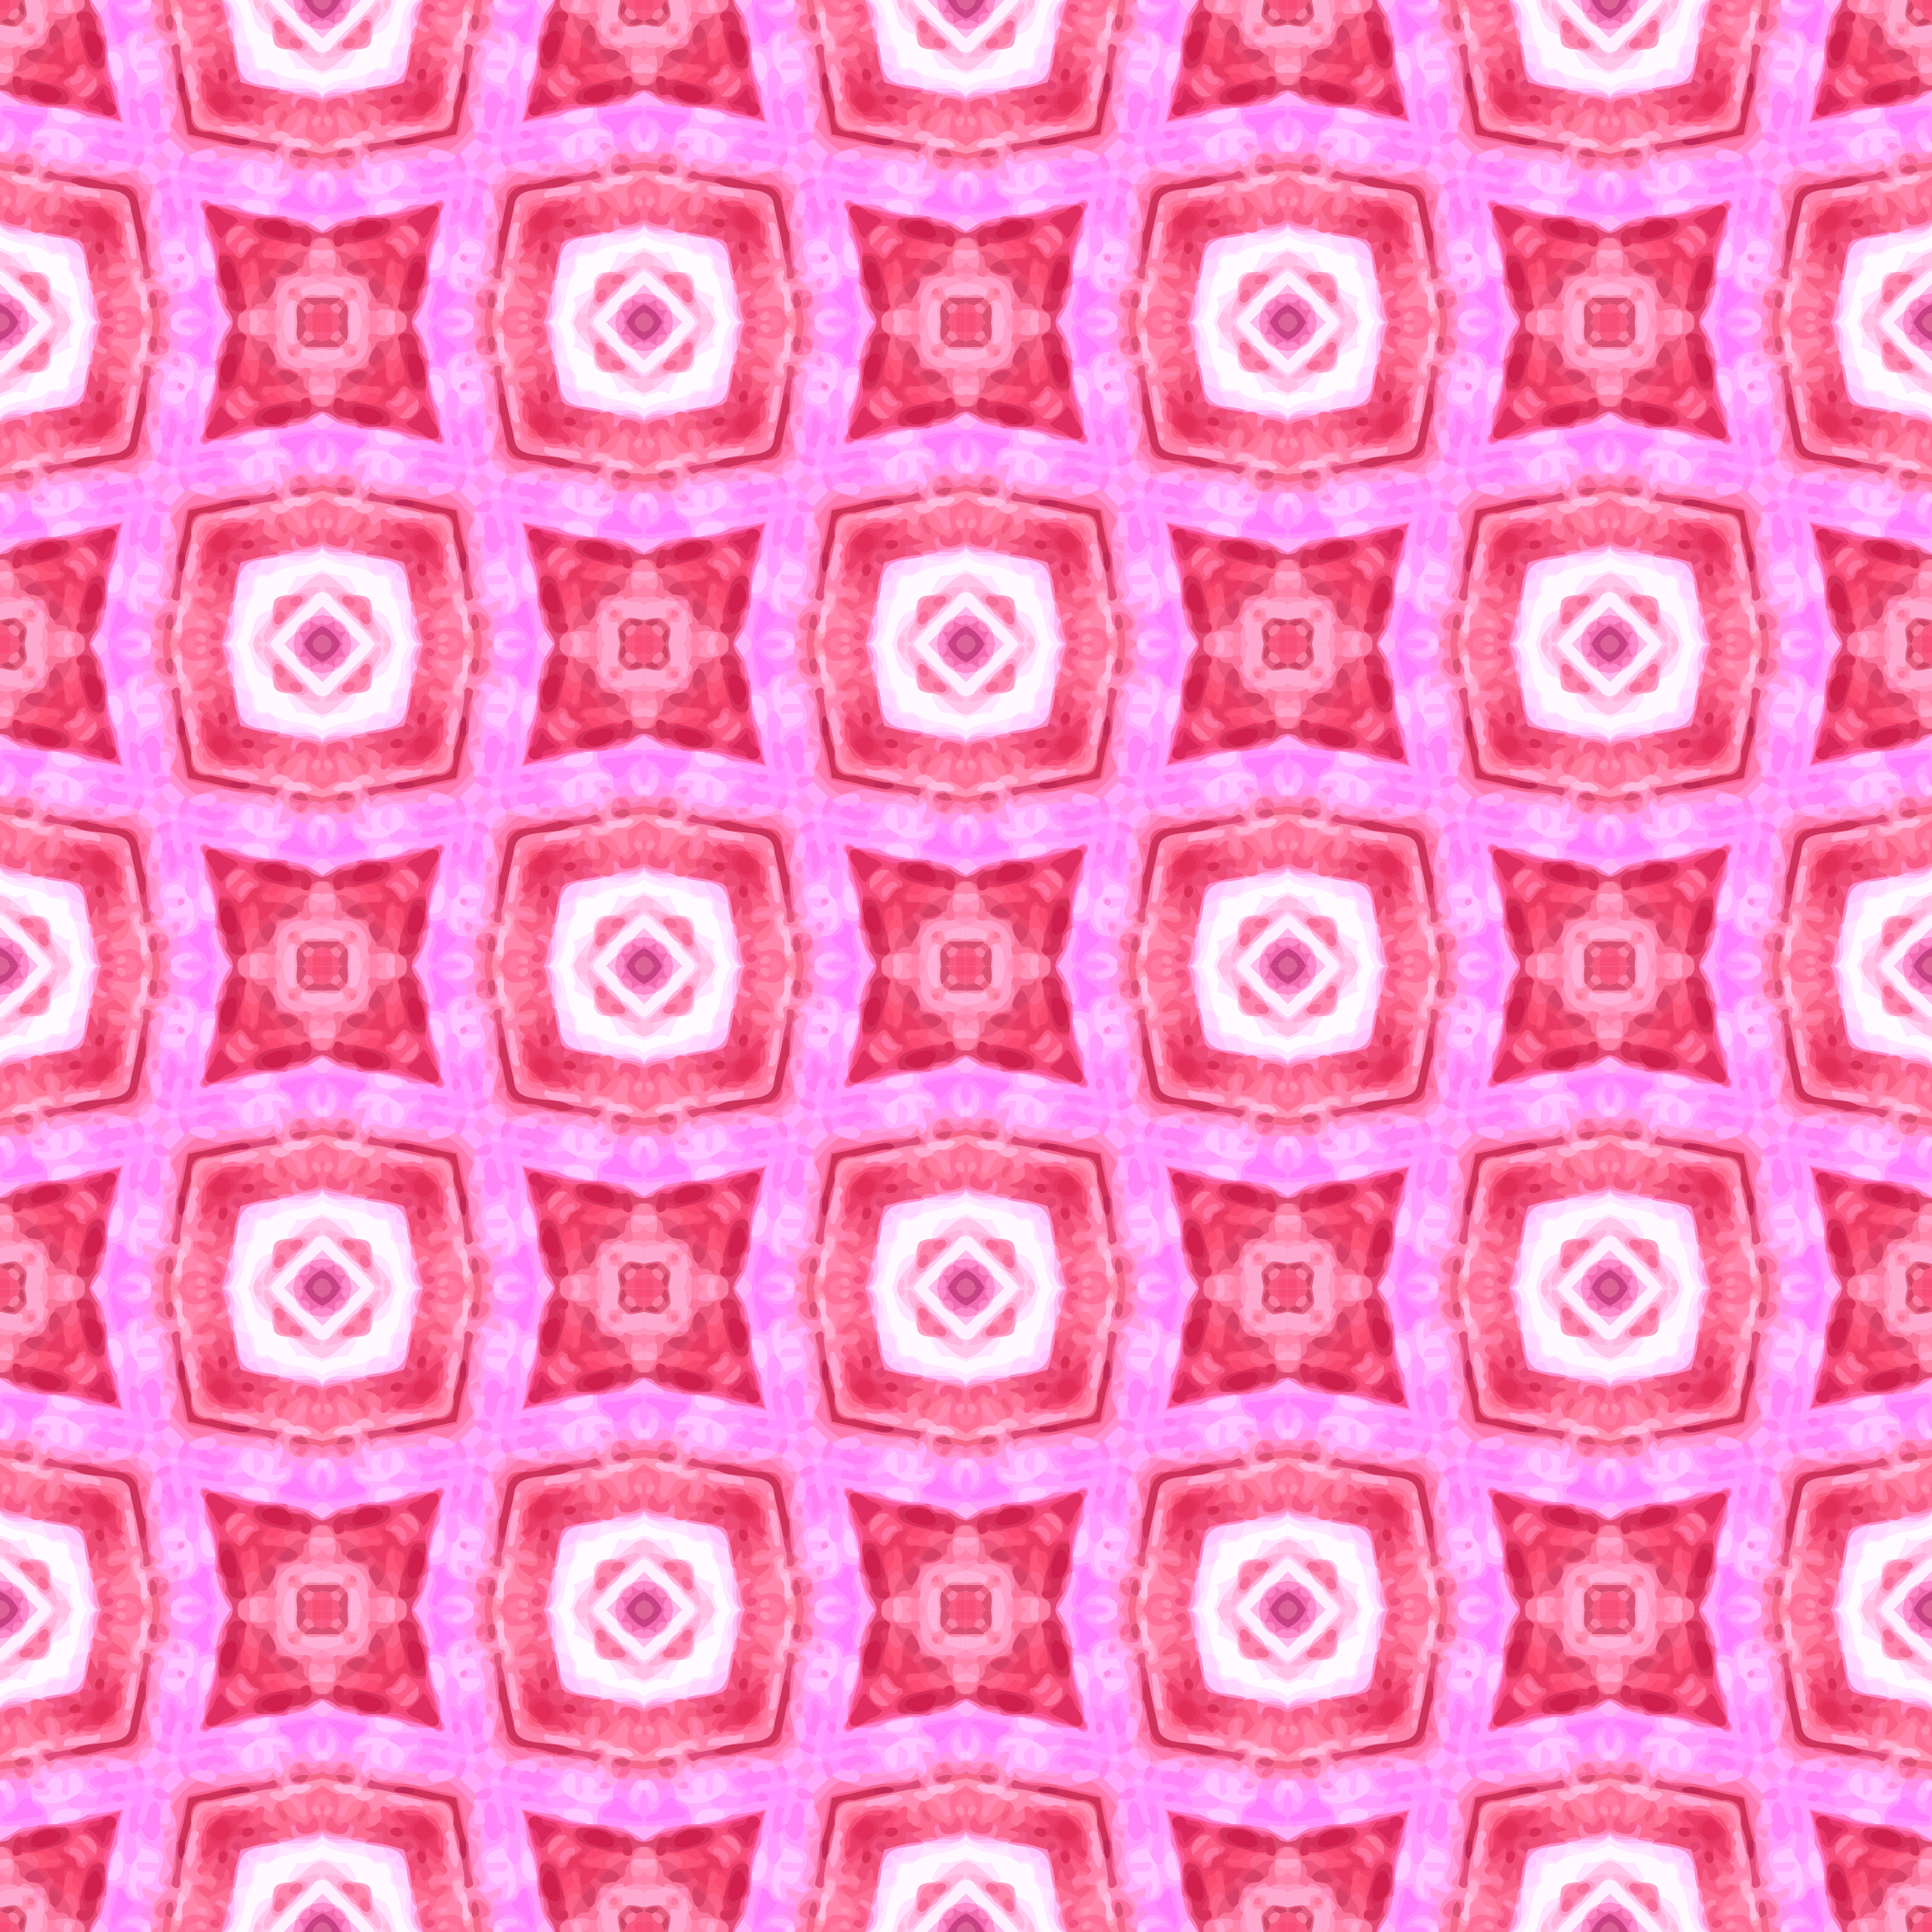 Background pattern 159 (colour 6) by Firkin